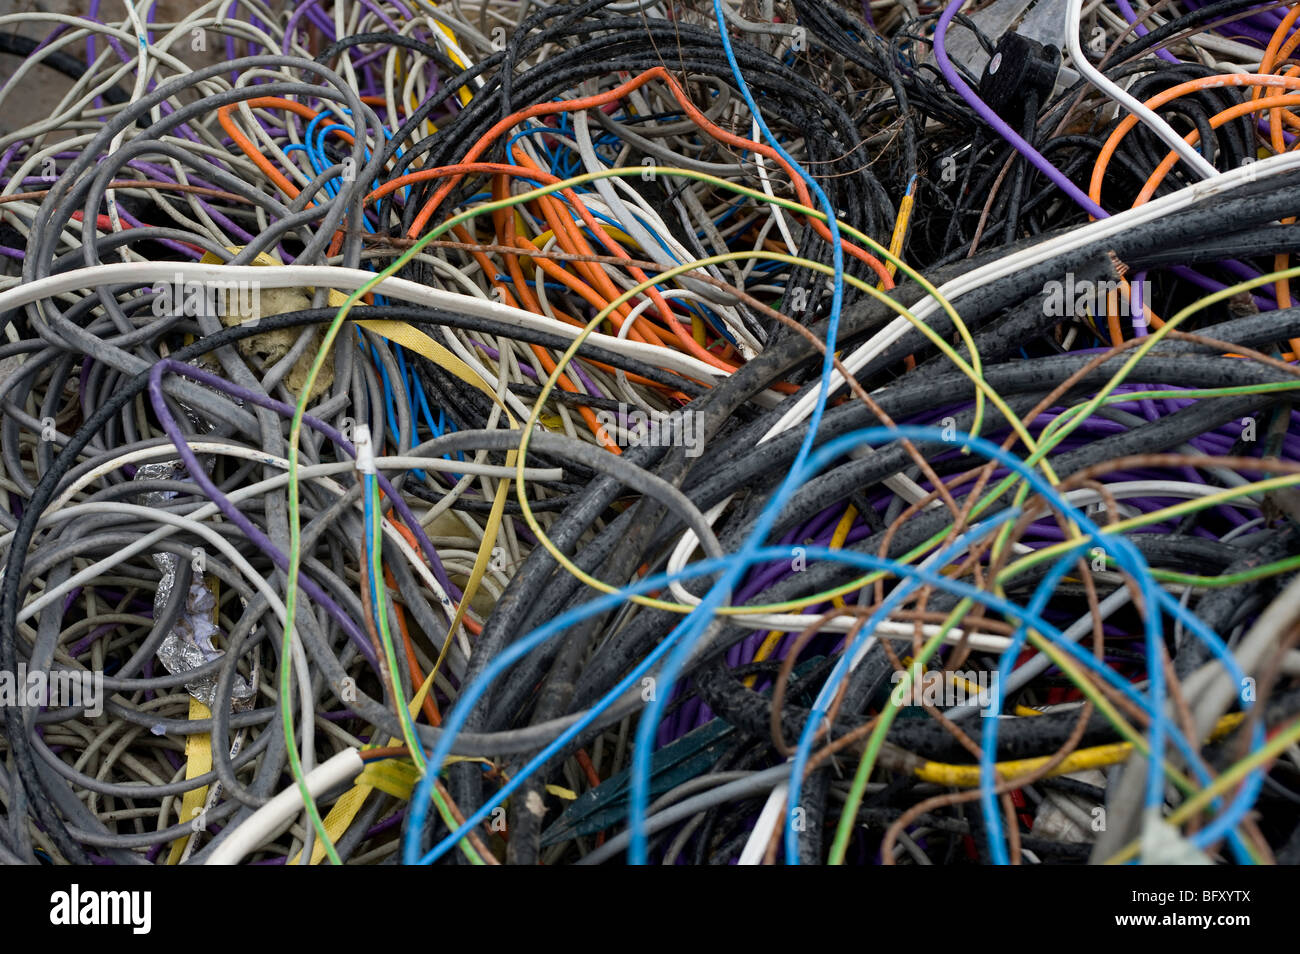 Electrical Materials Stock Photos Wiring Philippines Waste At A Recovery Facility In England Image